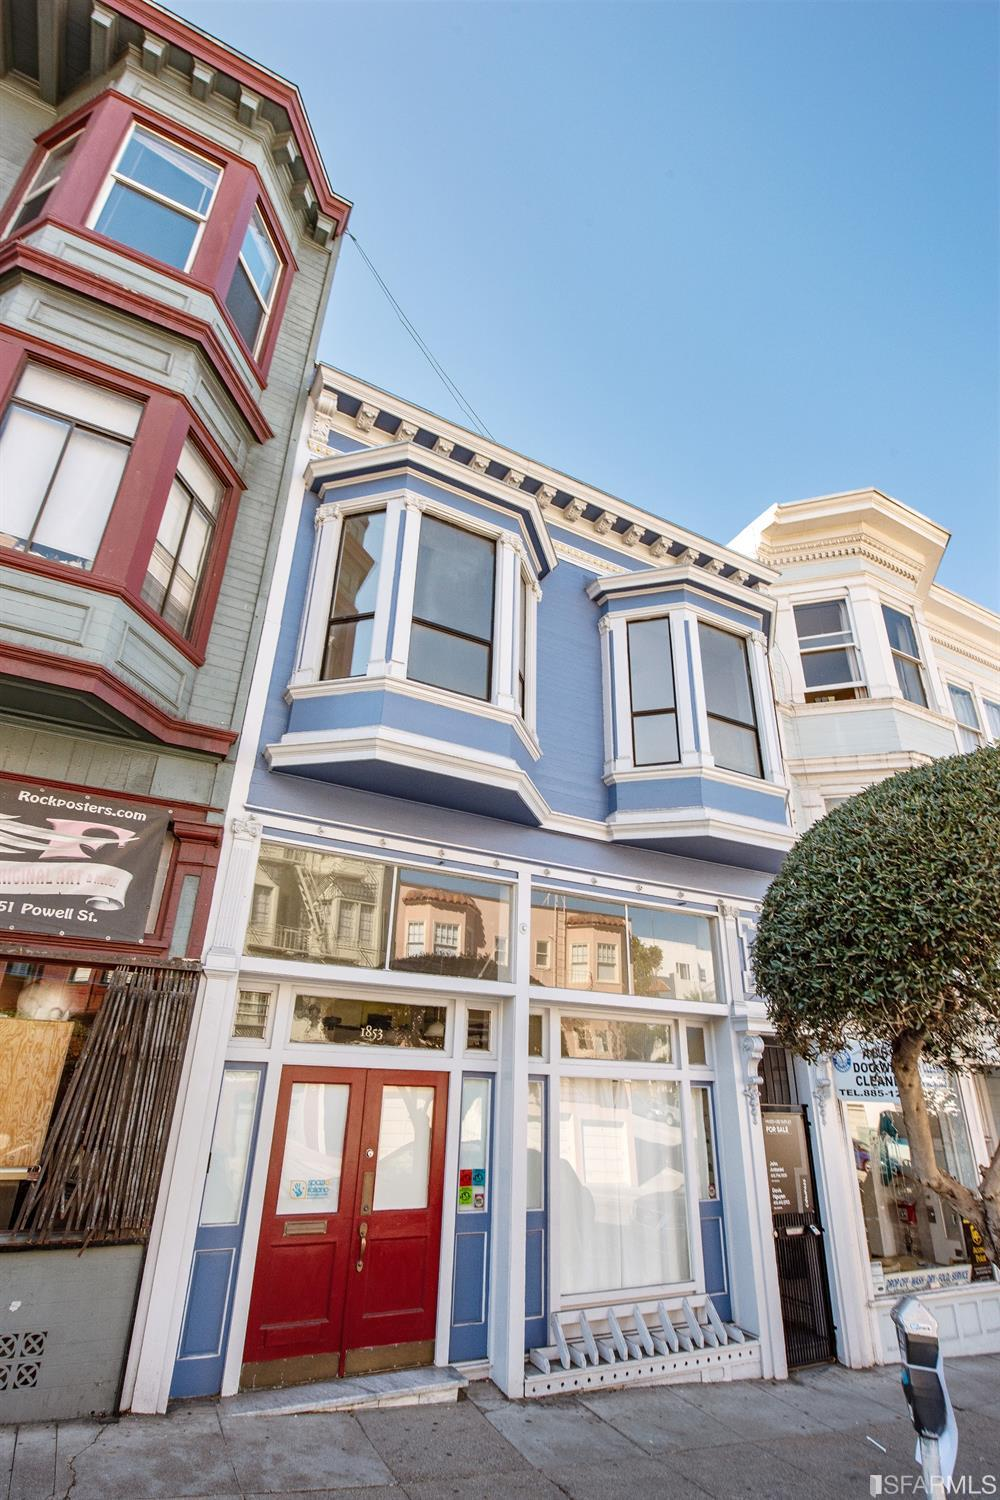 Spazio Italiano San Francisco 1853 1855 powell street, san francisco, ca 94133 | the city country group @  vanguard properties